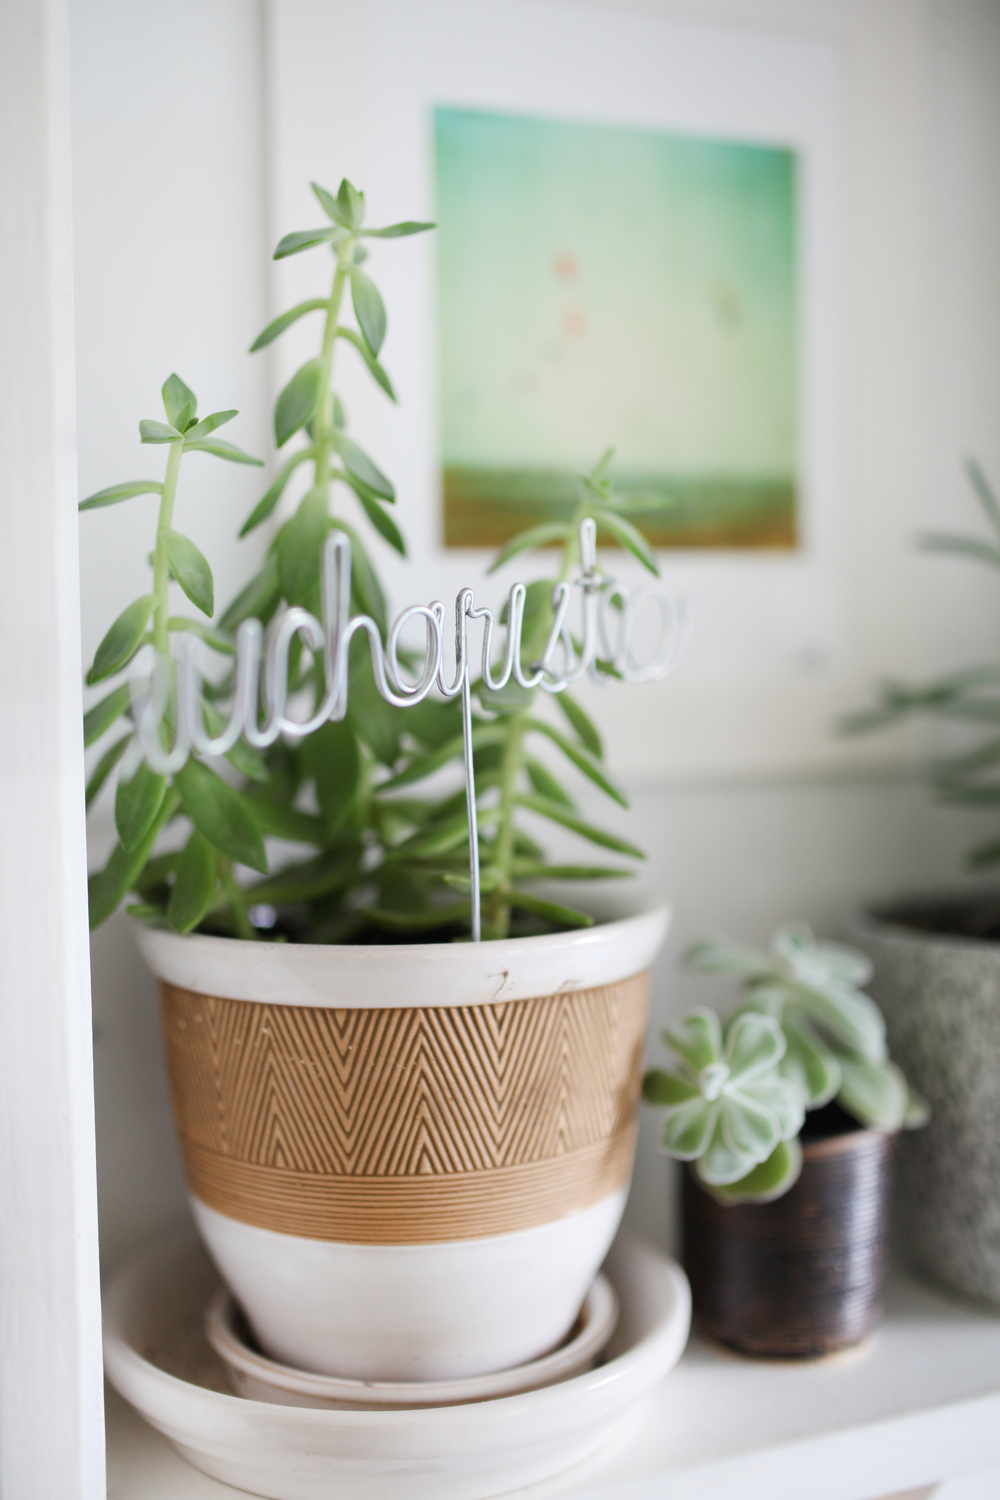 Home office inspiration - office ideas - office plants - potted plants - succulents -